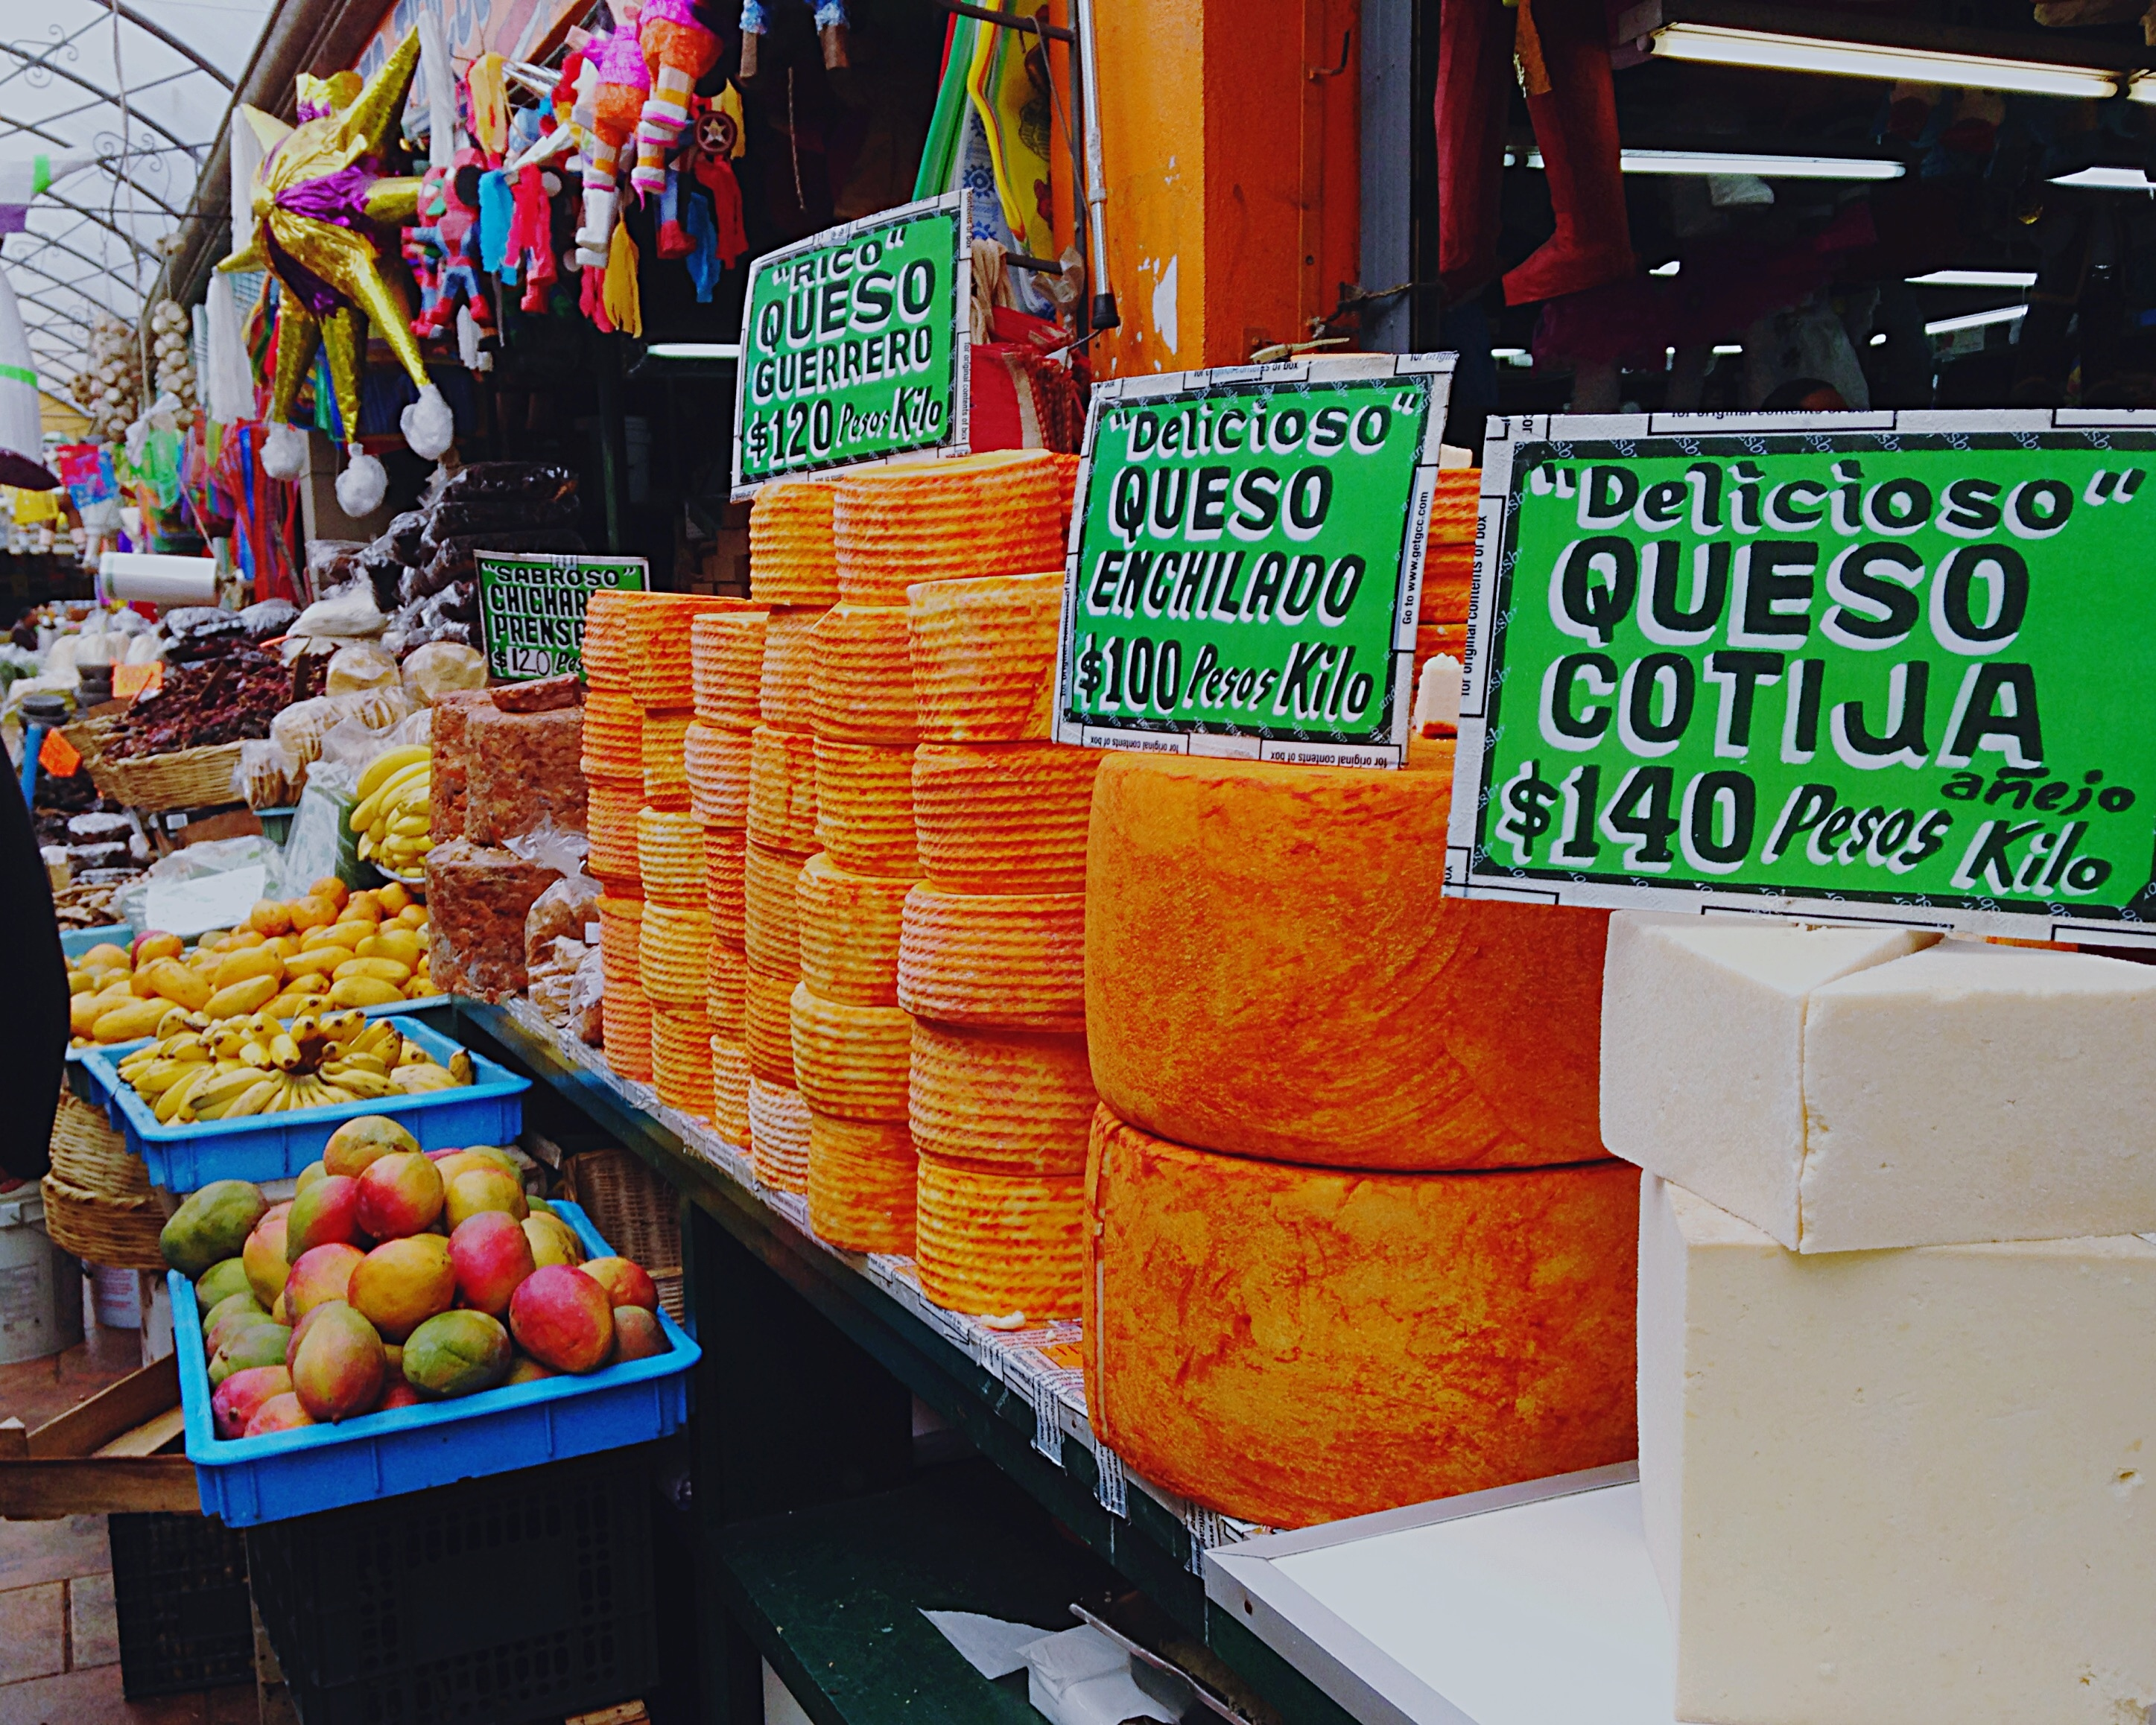 Cotija cheese. (Photo by Luis Ruiz Diaz/EyeEm via Getty Images)